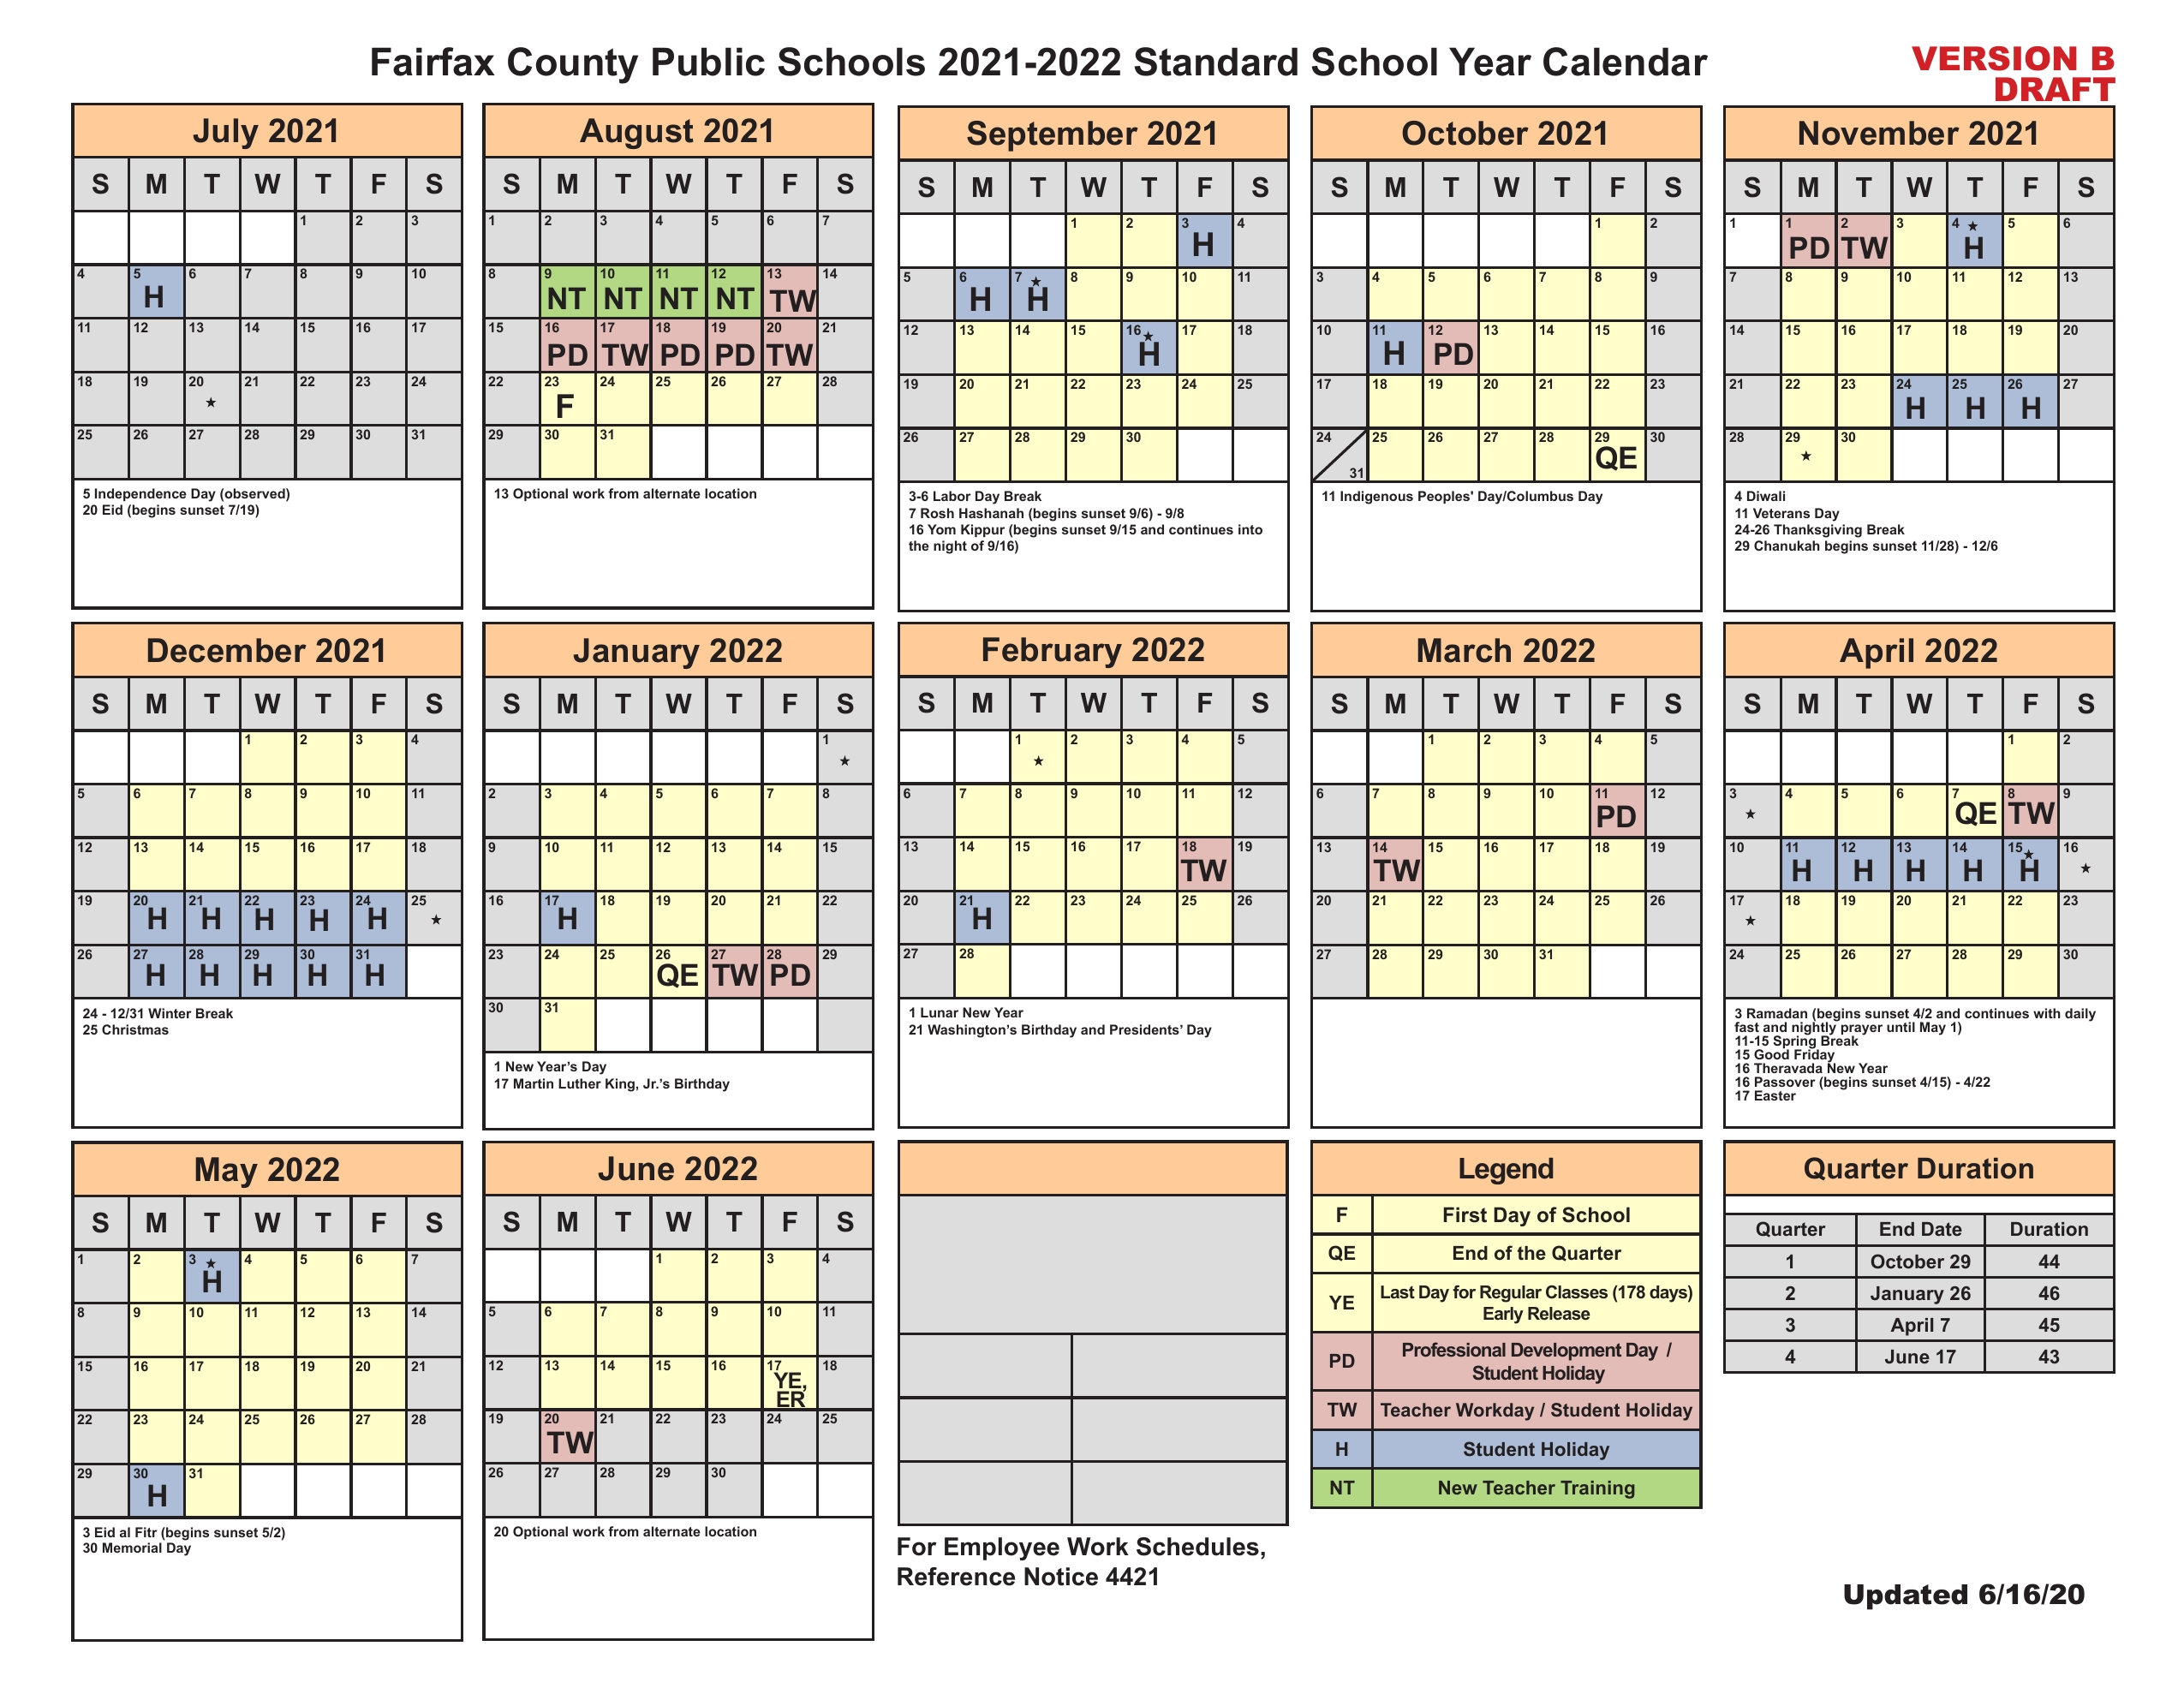 Christian County School Calendar 2021-22 Fairfax County School Board to add Jewish, Hindu, Muslim holidays